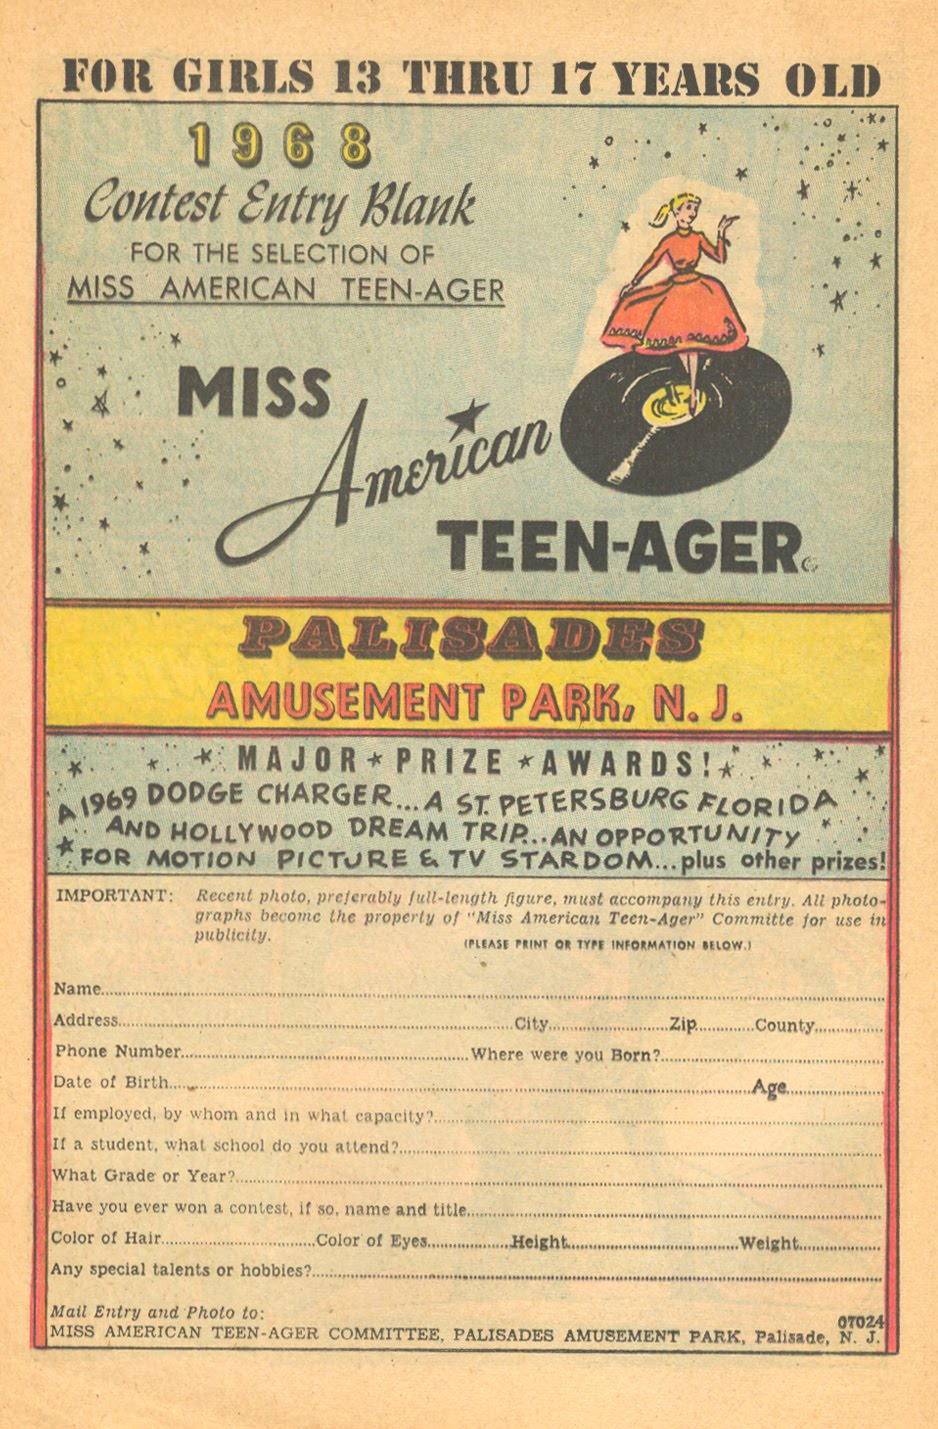 Palisades Amusement Park New Jersey comic books advertisement